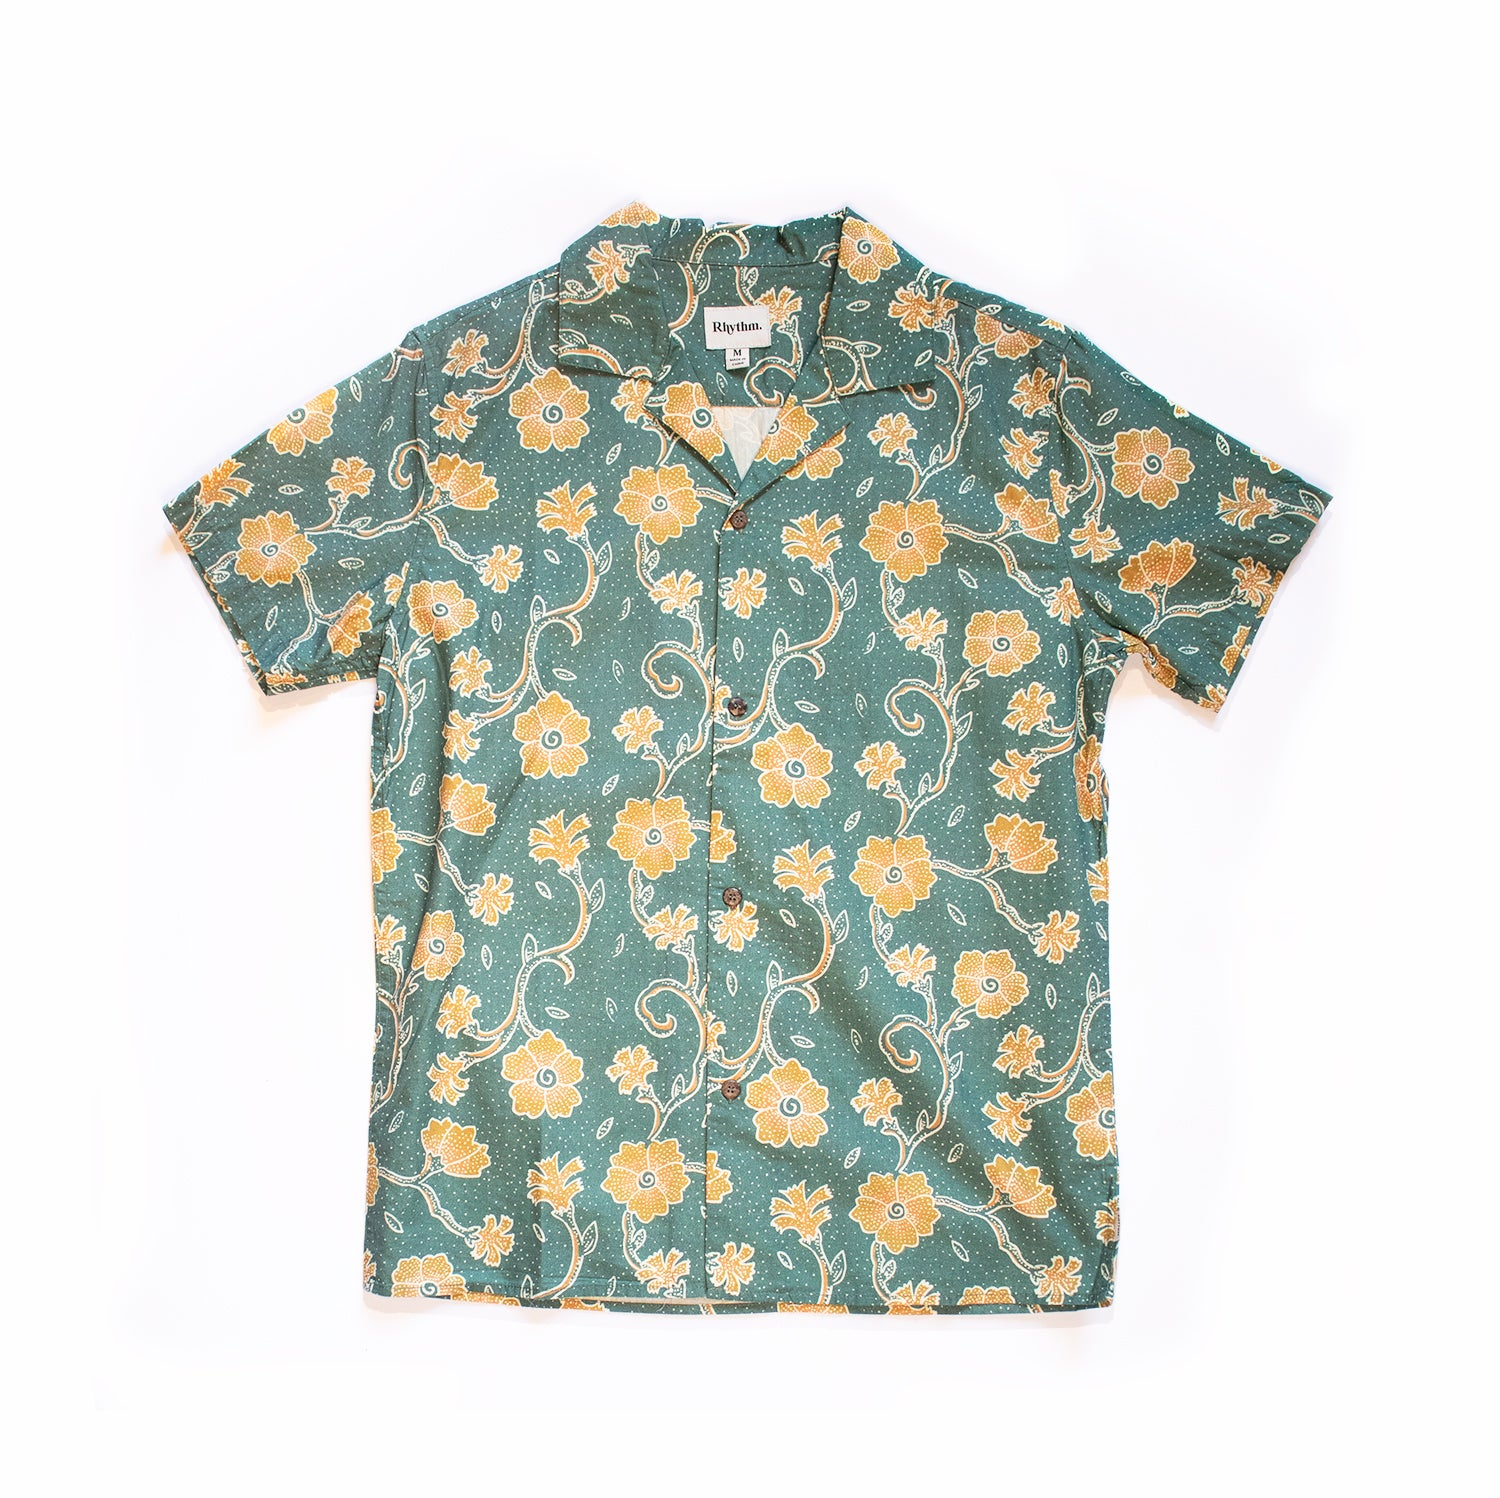 Desert Flower Shirt - Agave